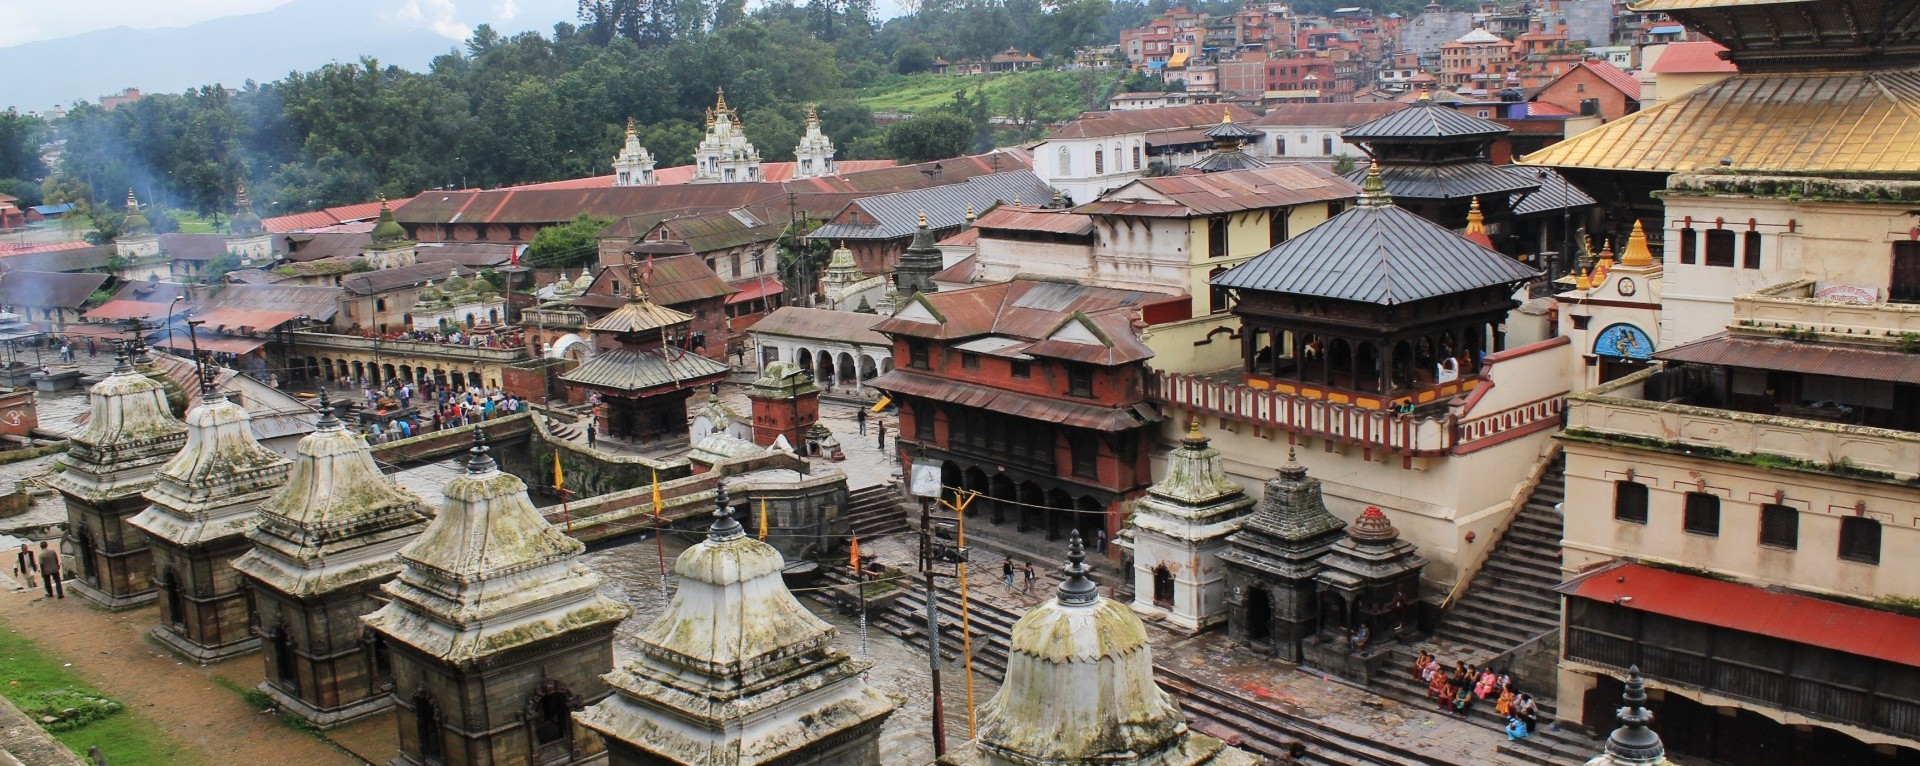 Holiest Hindu Shrine of Pashupatinath.